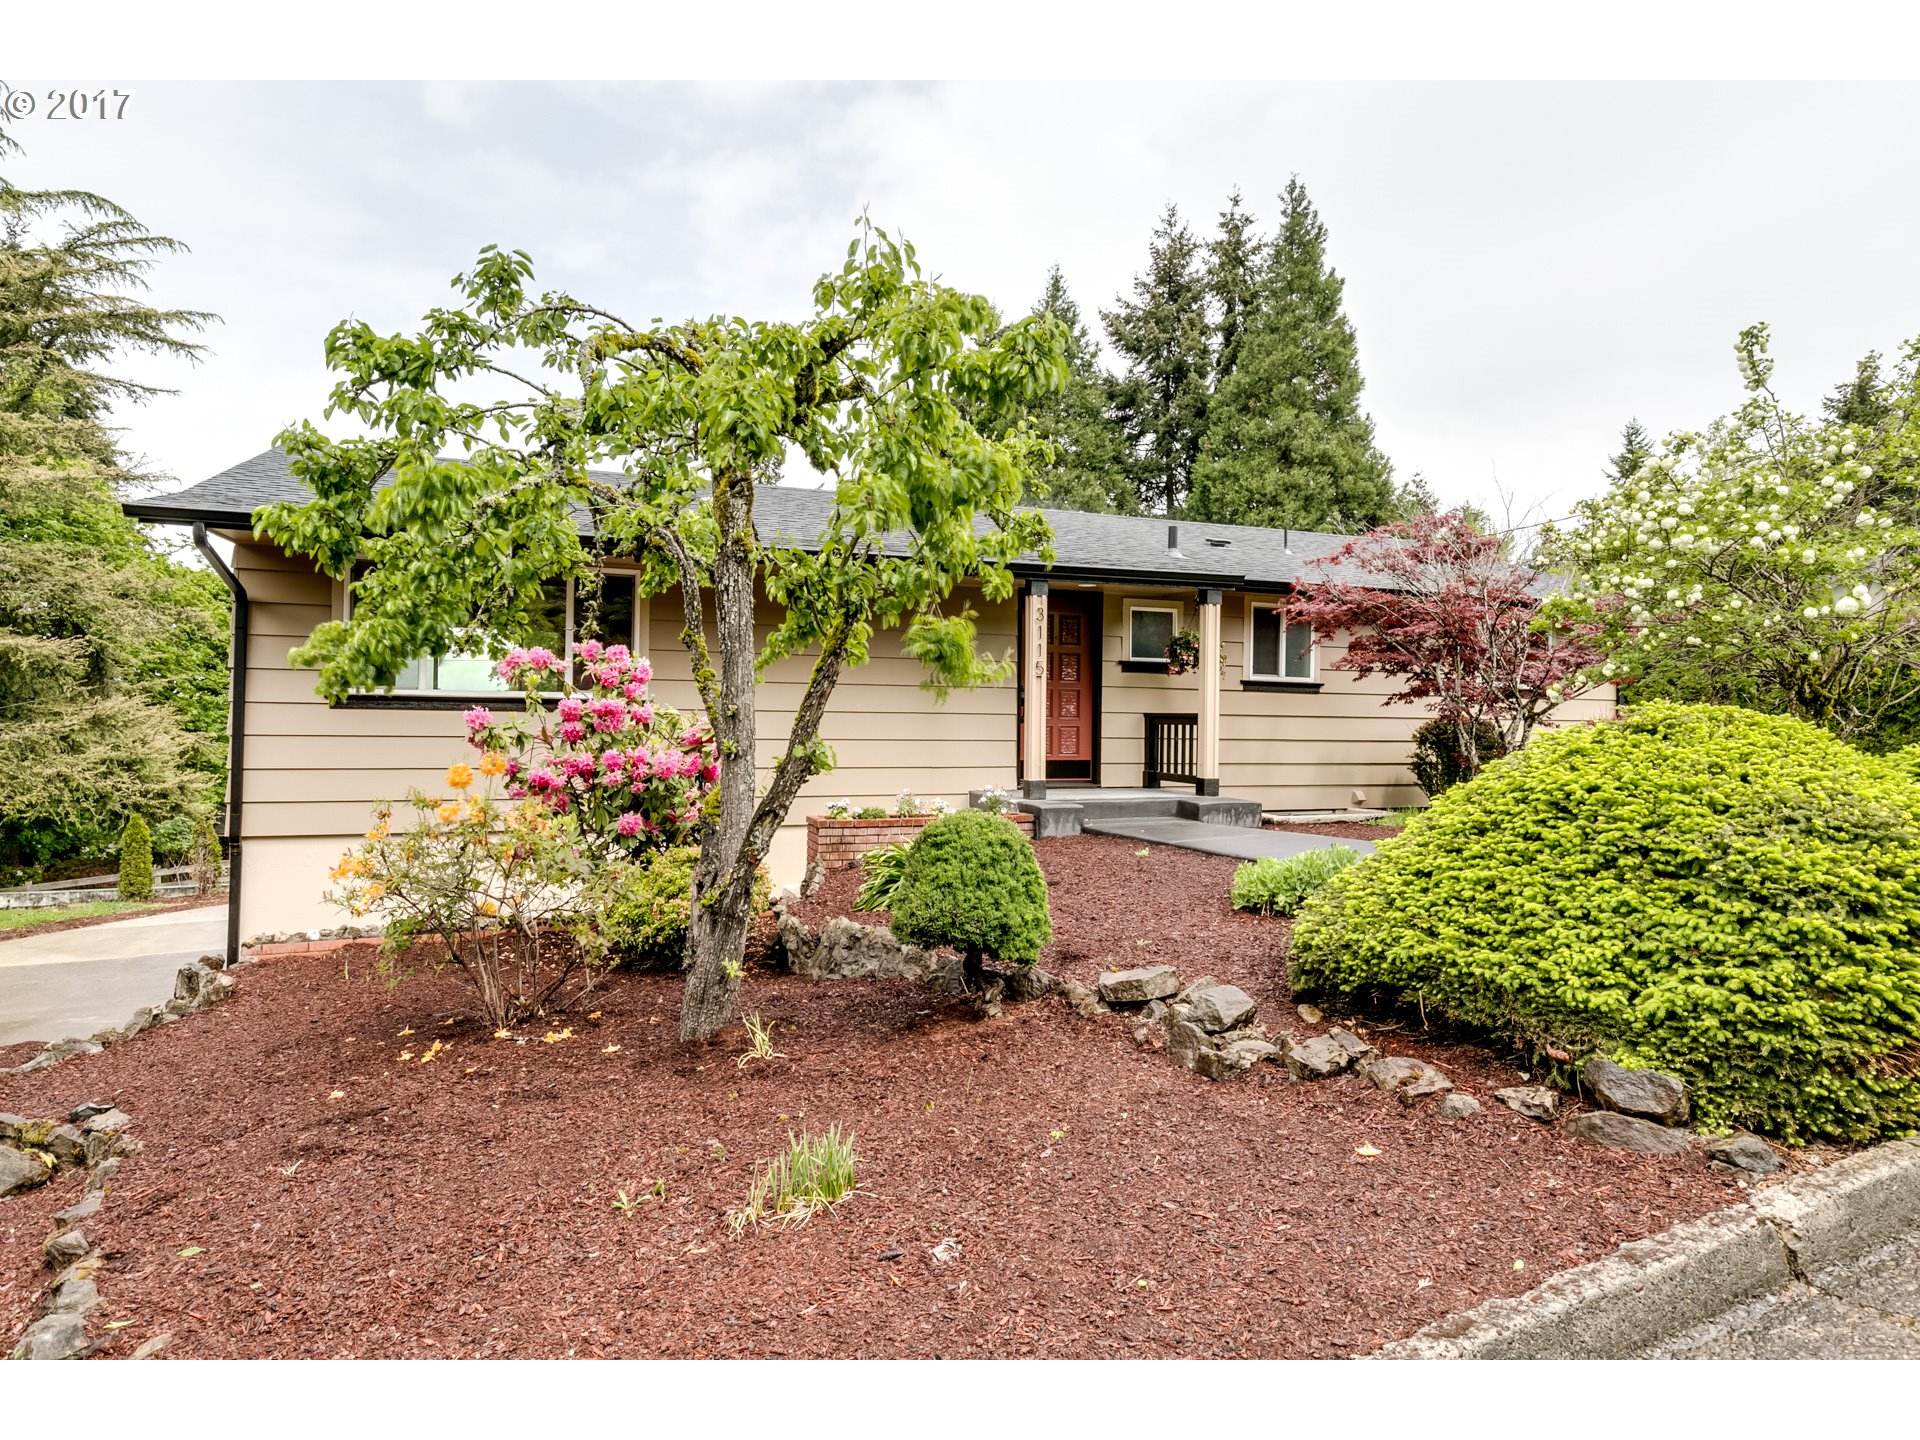 3115 W 19TH AVE, Eugene, OR 97405